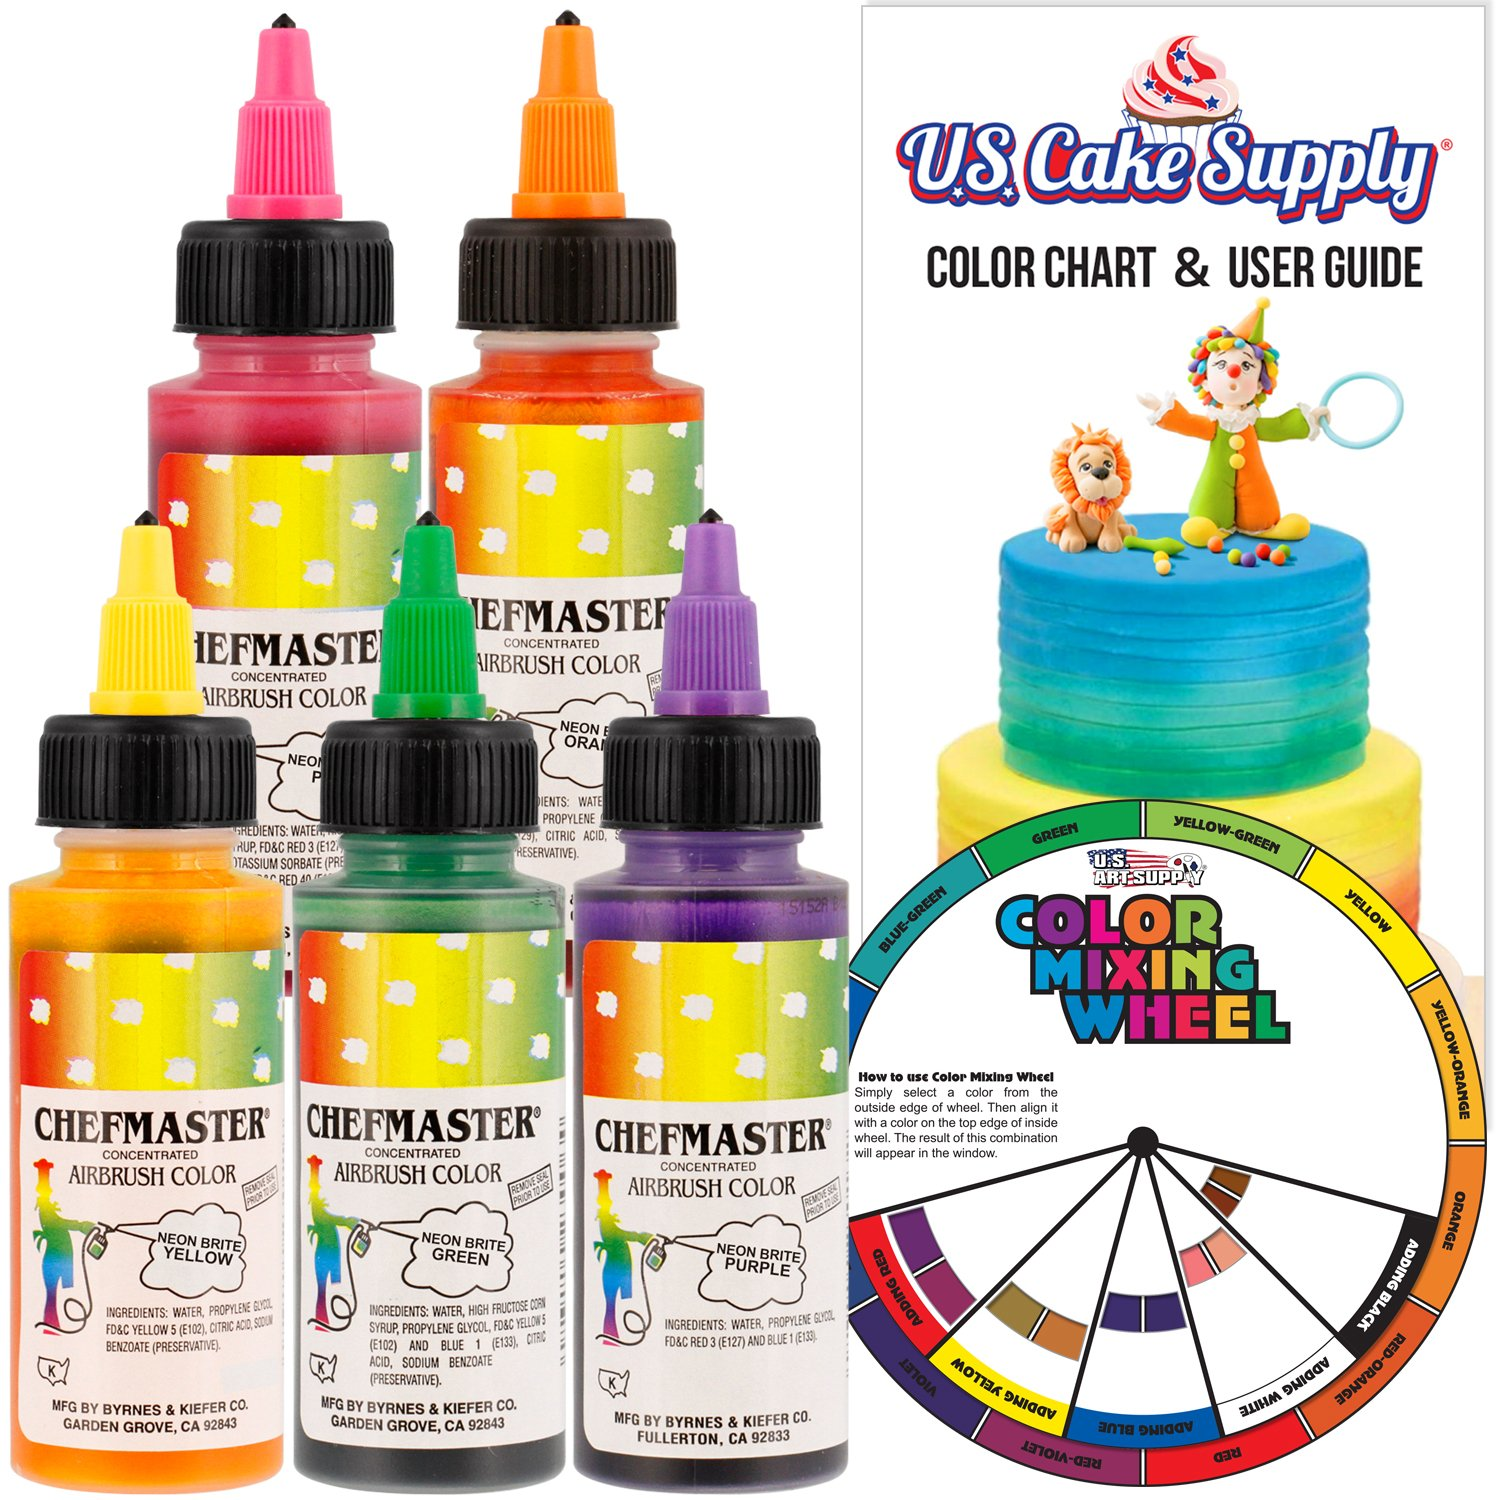 Food color chart images free any chart examples chefmaster by us cake supply 23 ounce neon airbrush cake food chefmaster by us cake supply nvjuhfo Choice Image